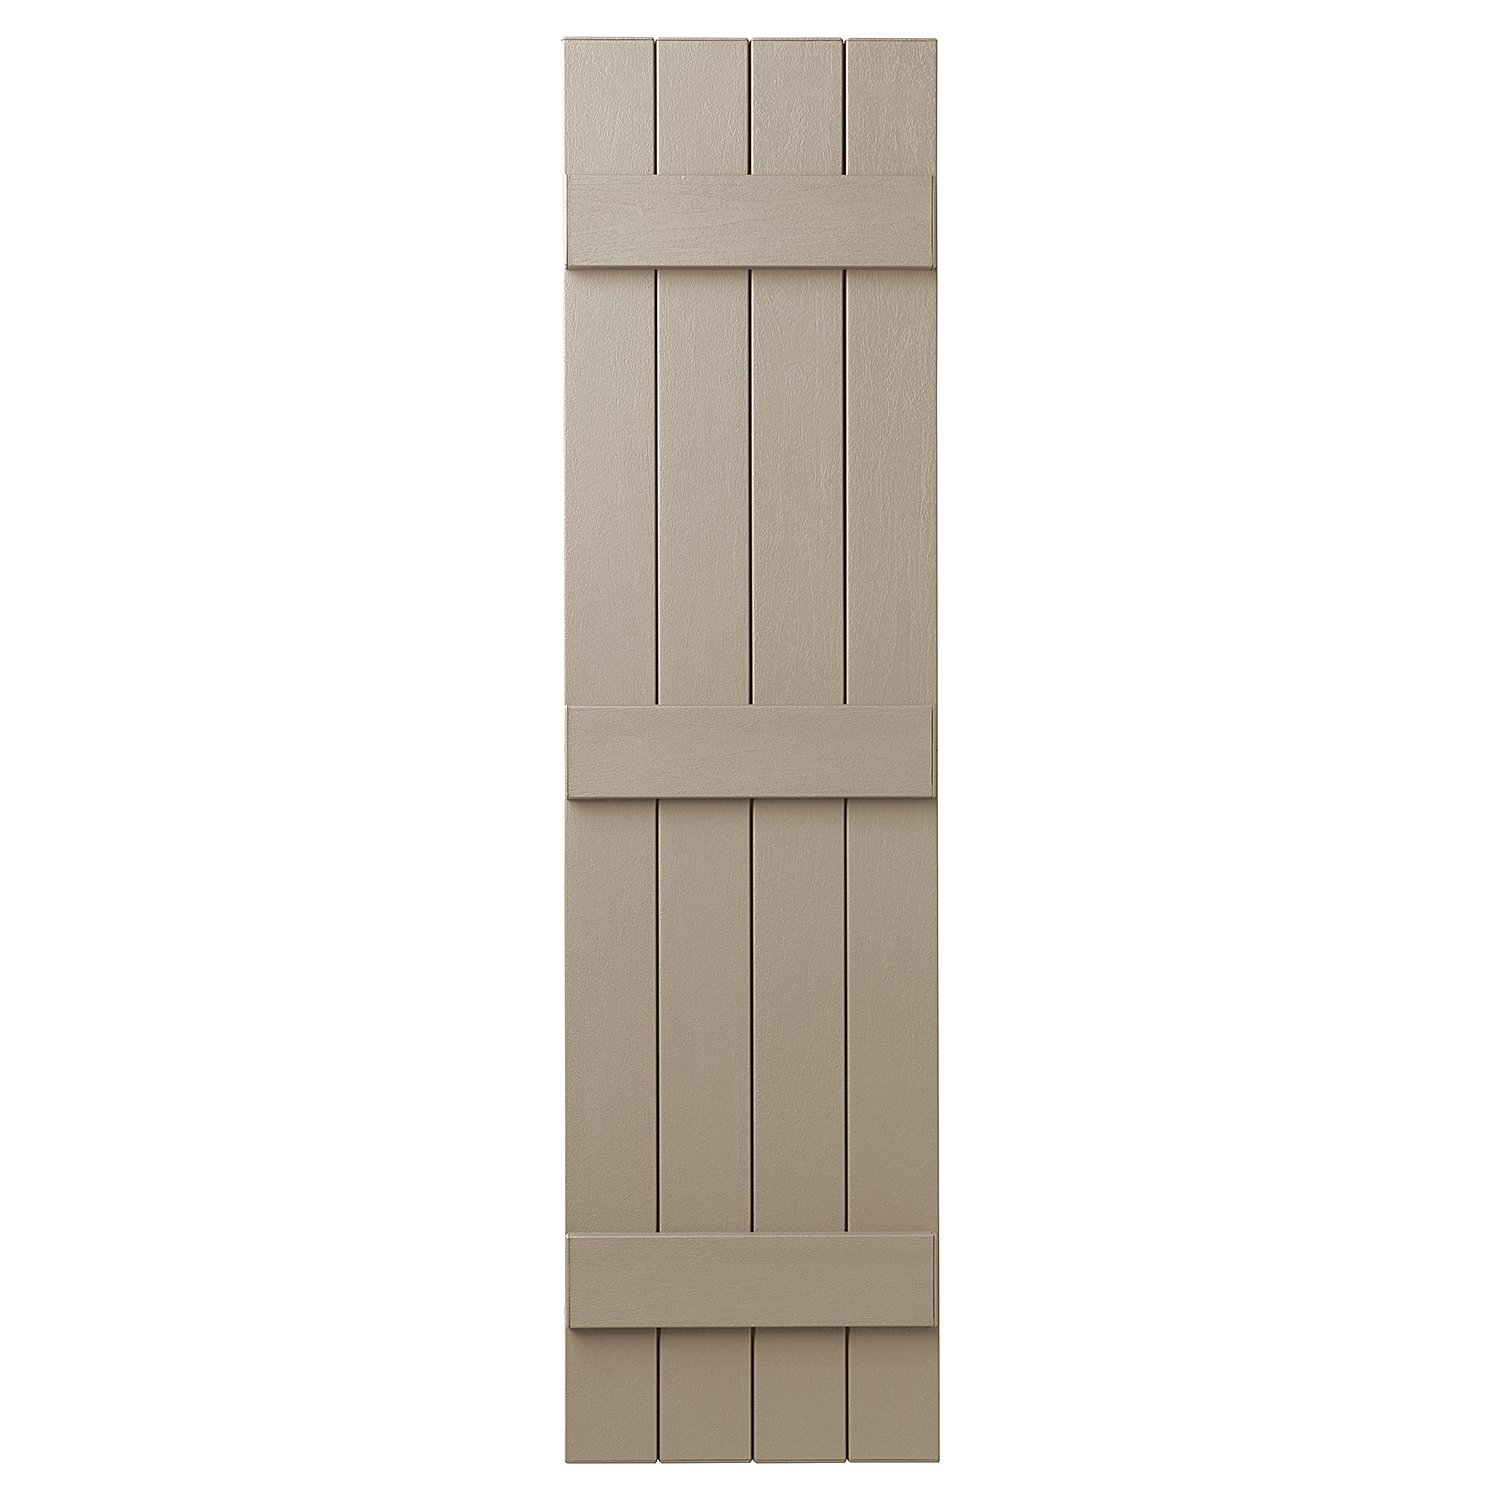 PlyGem Shutters and Accents VIN4C1559 52 4 Closed Board and Batten Shutter, Pebblestone Clay by PlyGem Shutters and Accents (Image #1)